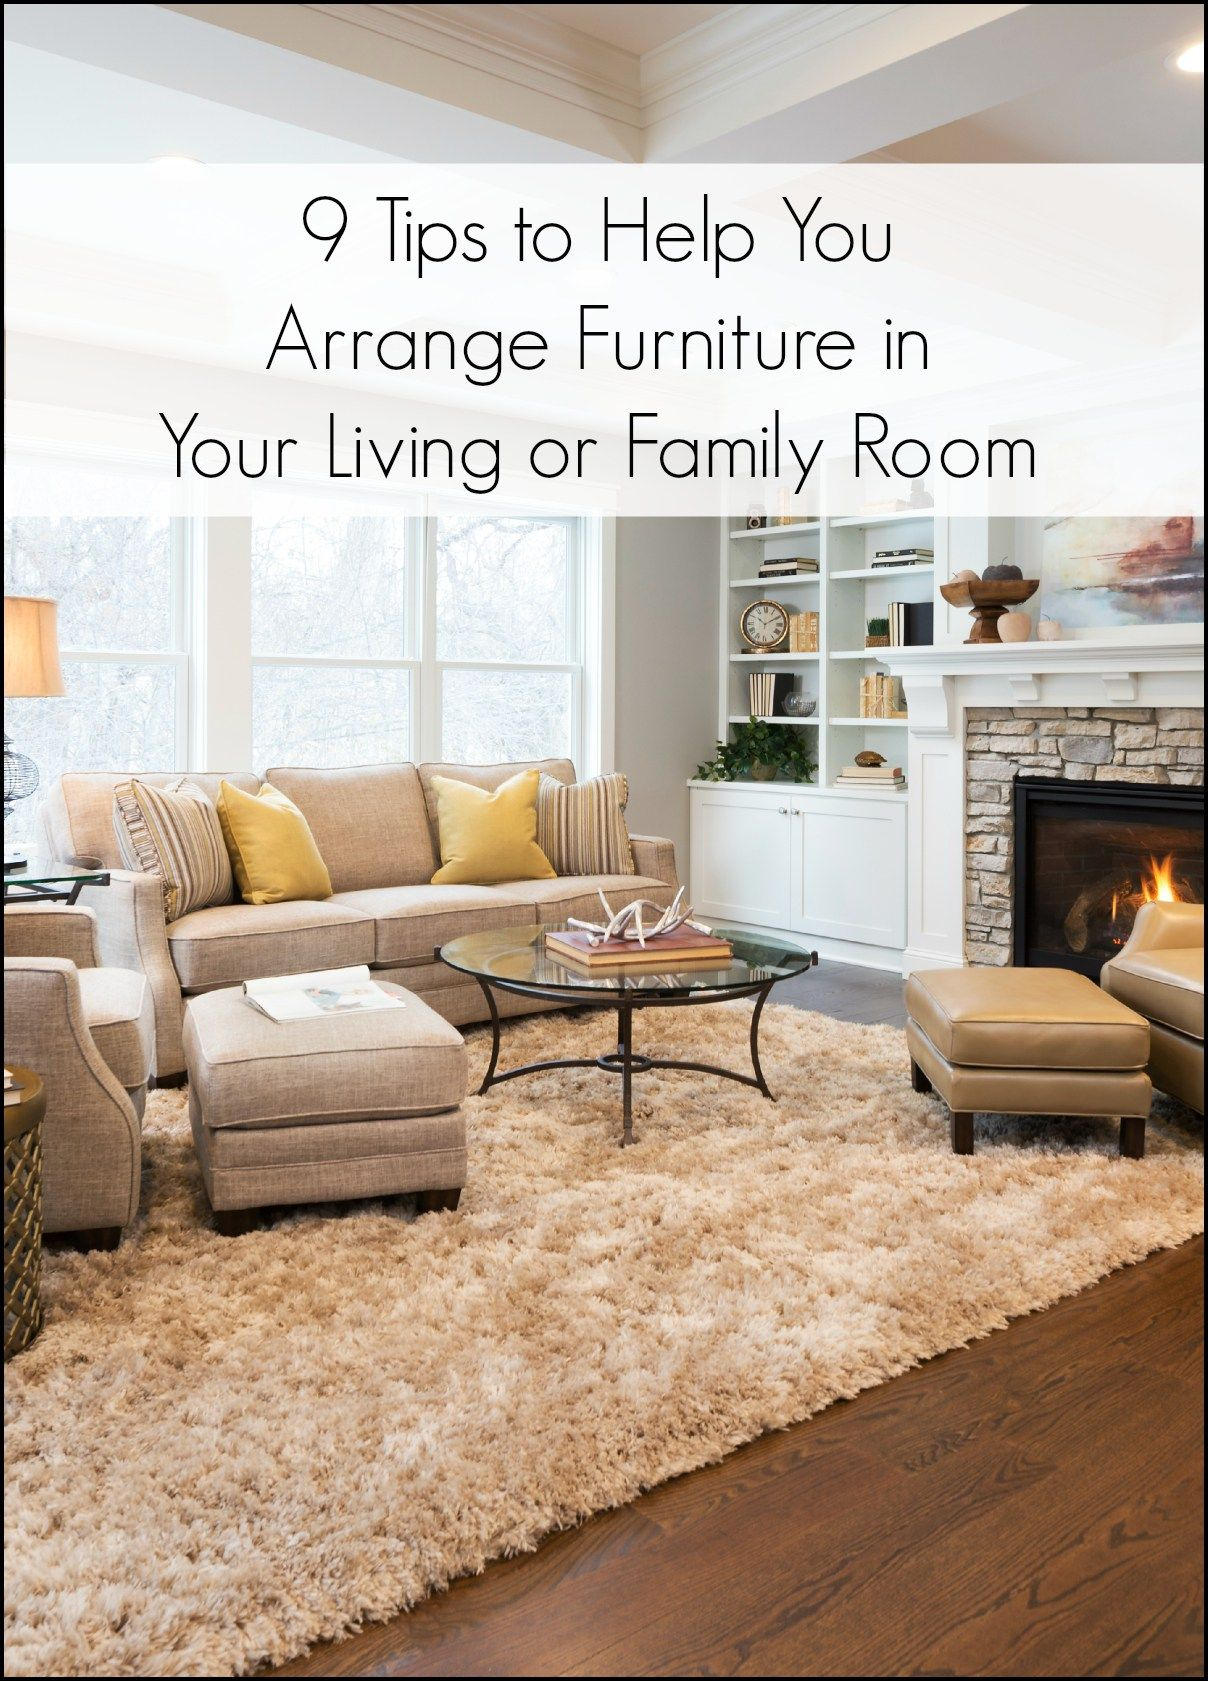 9 tips for arranging furniture in a living room or family room 9 tips to help you arrange furniture in your living room or family room